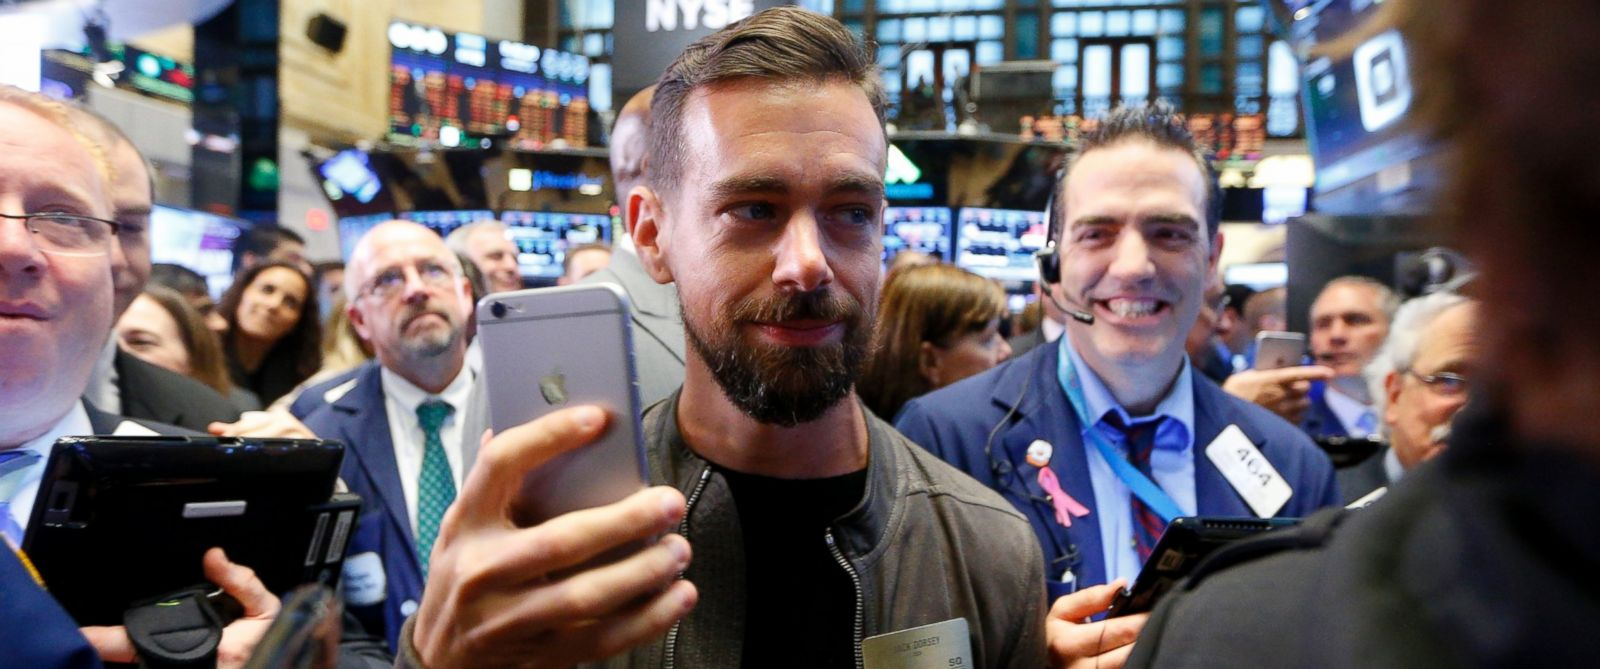 PHOTO: Jack Dorsey, co-founder and CEO of Twitter and mobile payments company Square, waits for Square stock to open up on the New York Stock Exchange for the first day of public trading in New York, Nov. 19, 2015.